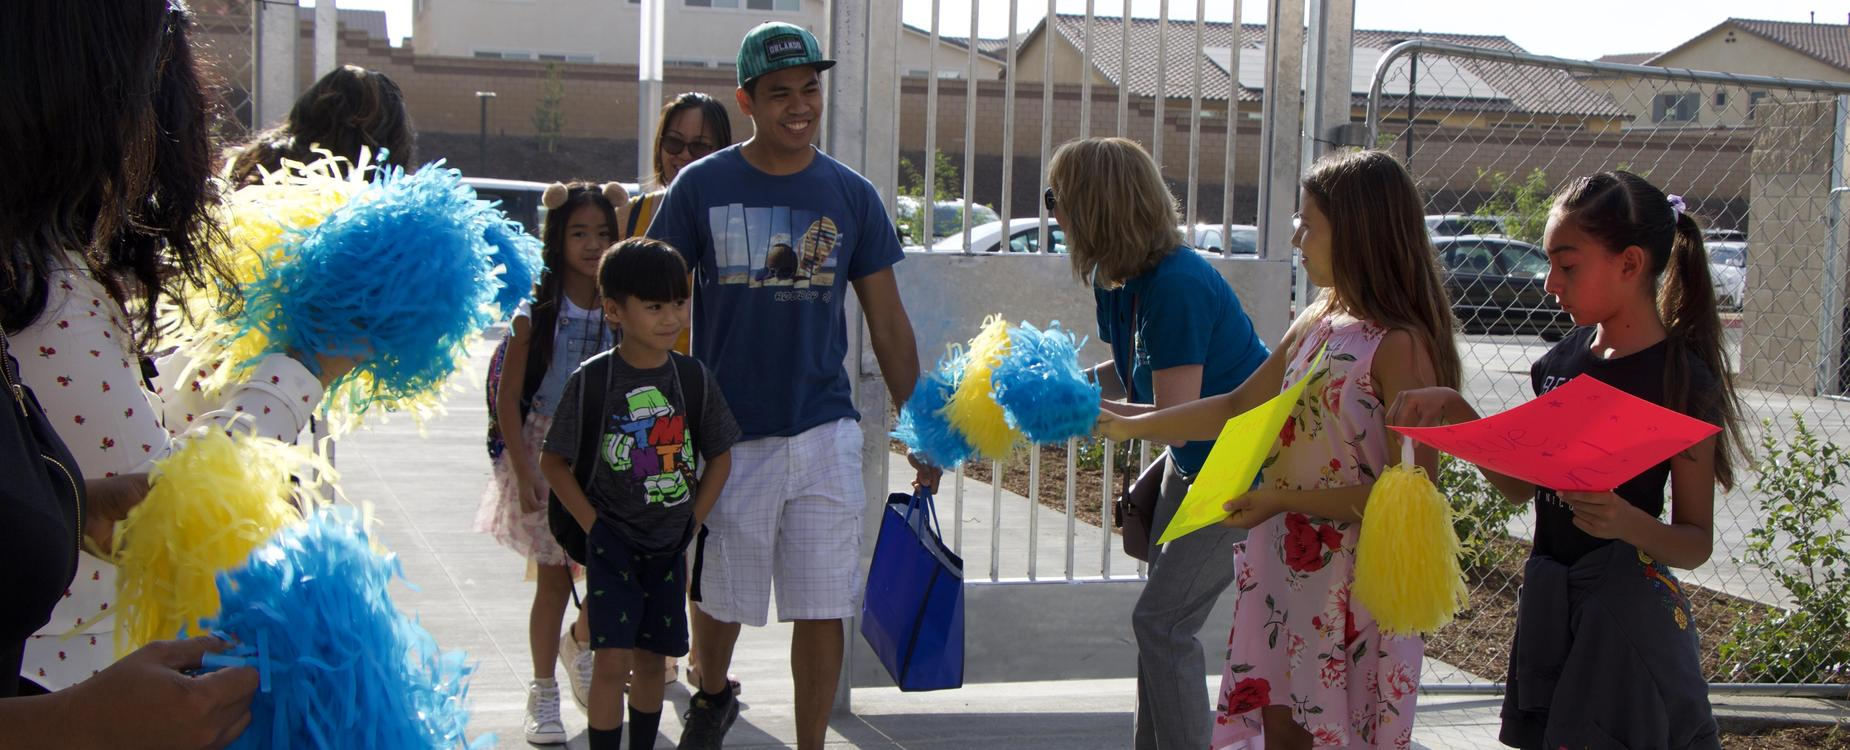 Students welcomed to school